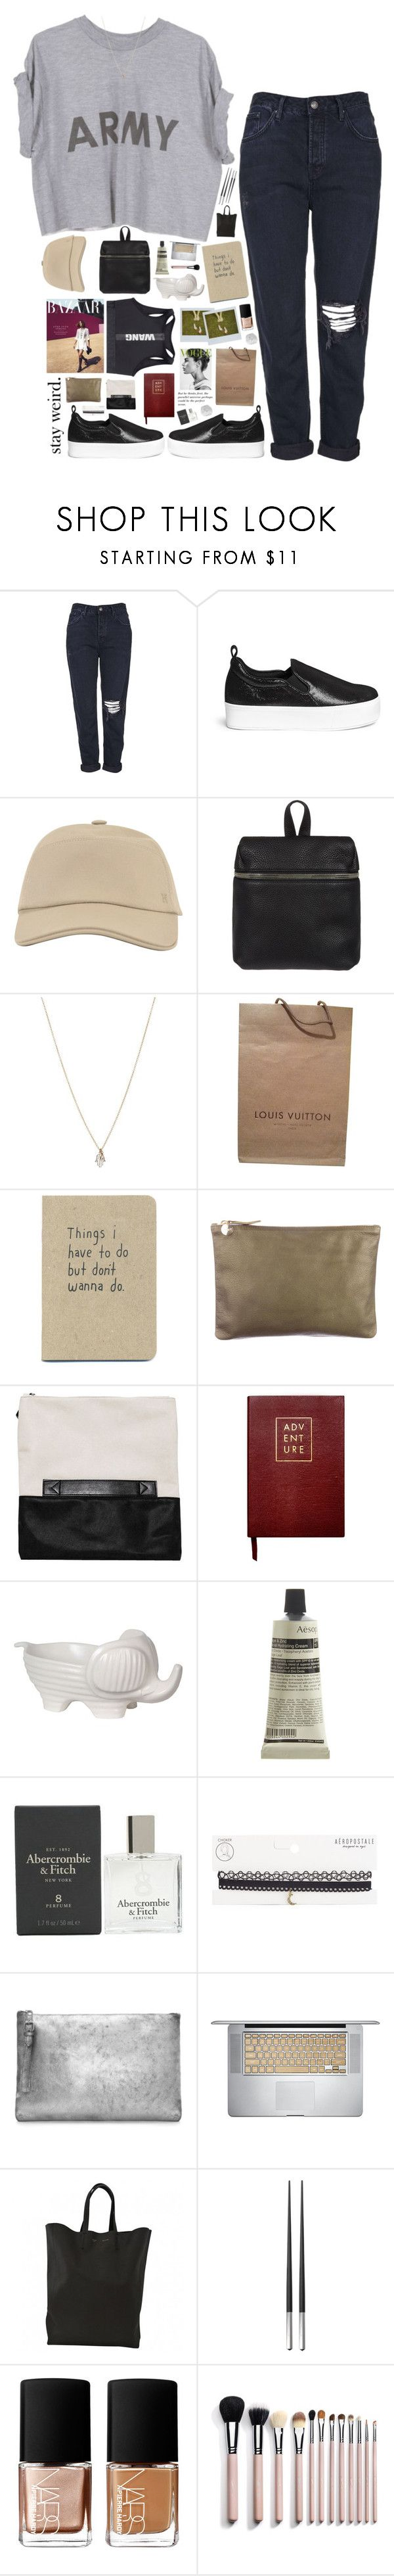 """""""The pineapple incident// NETFLIX SERIES LIST"""" by messyqueen on Polyvore featuring Topshop, Pedder Red, Hermès, Kara, ASOS, Louis Vuitton, Clare V., Sloane Stationery, Privilege and Aesop"""